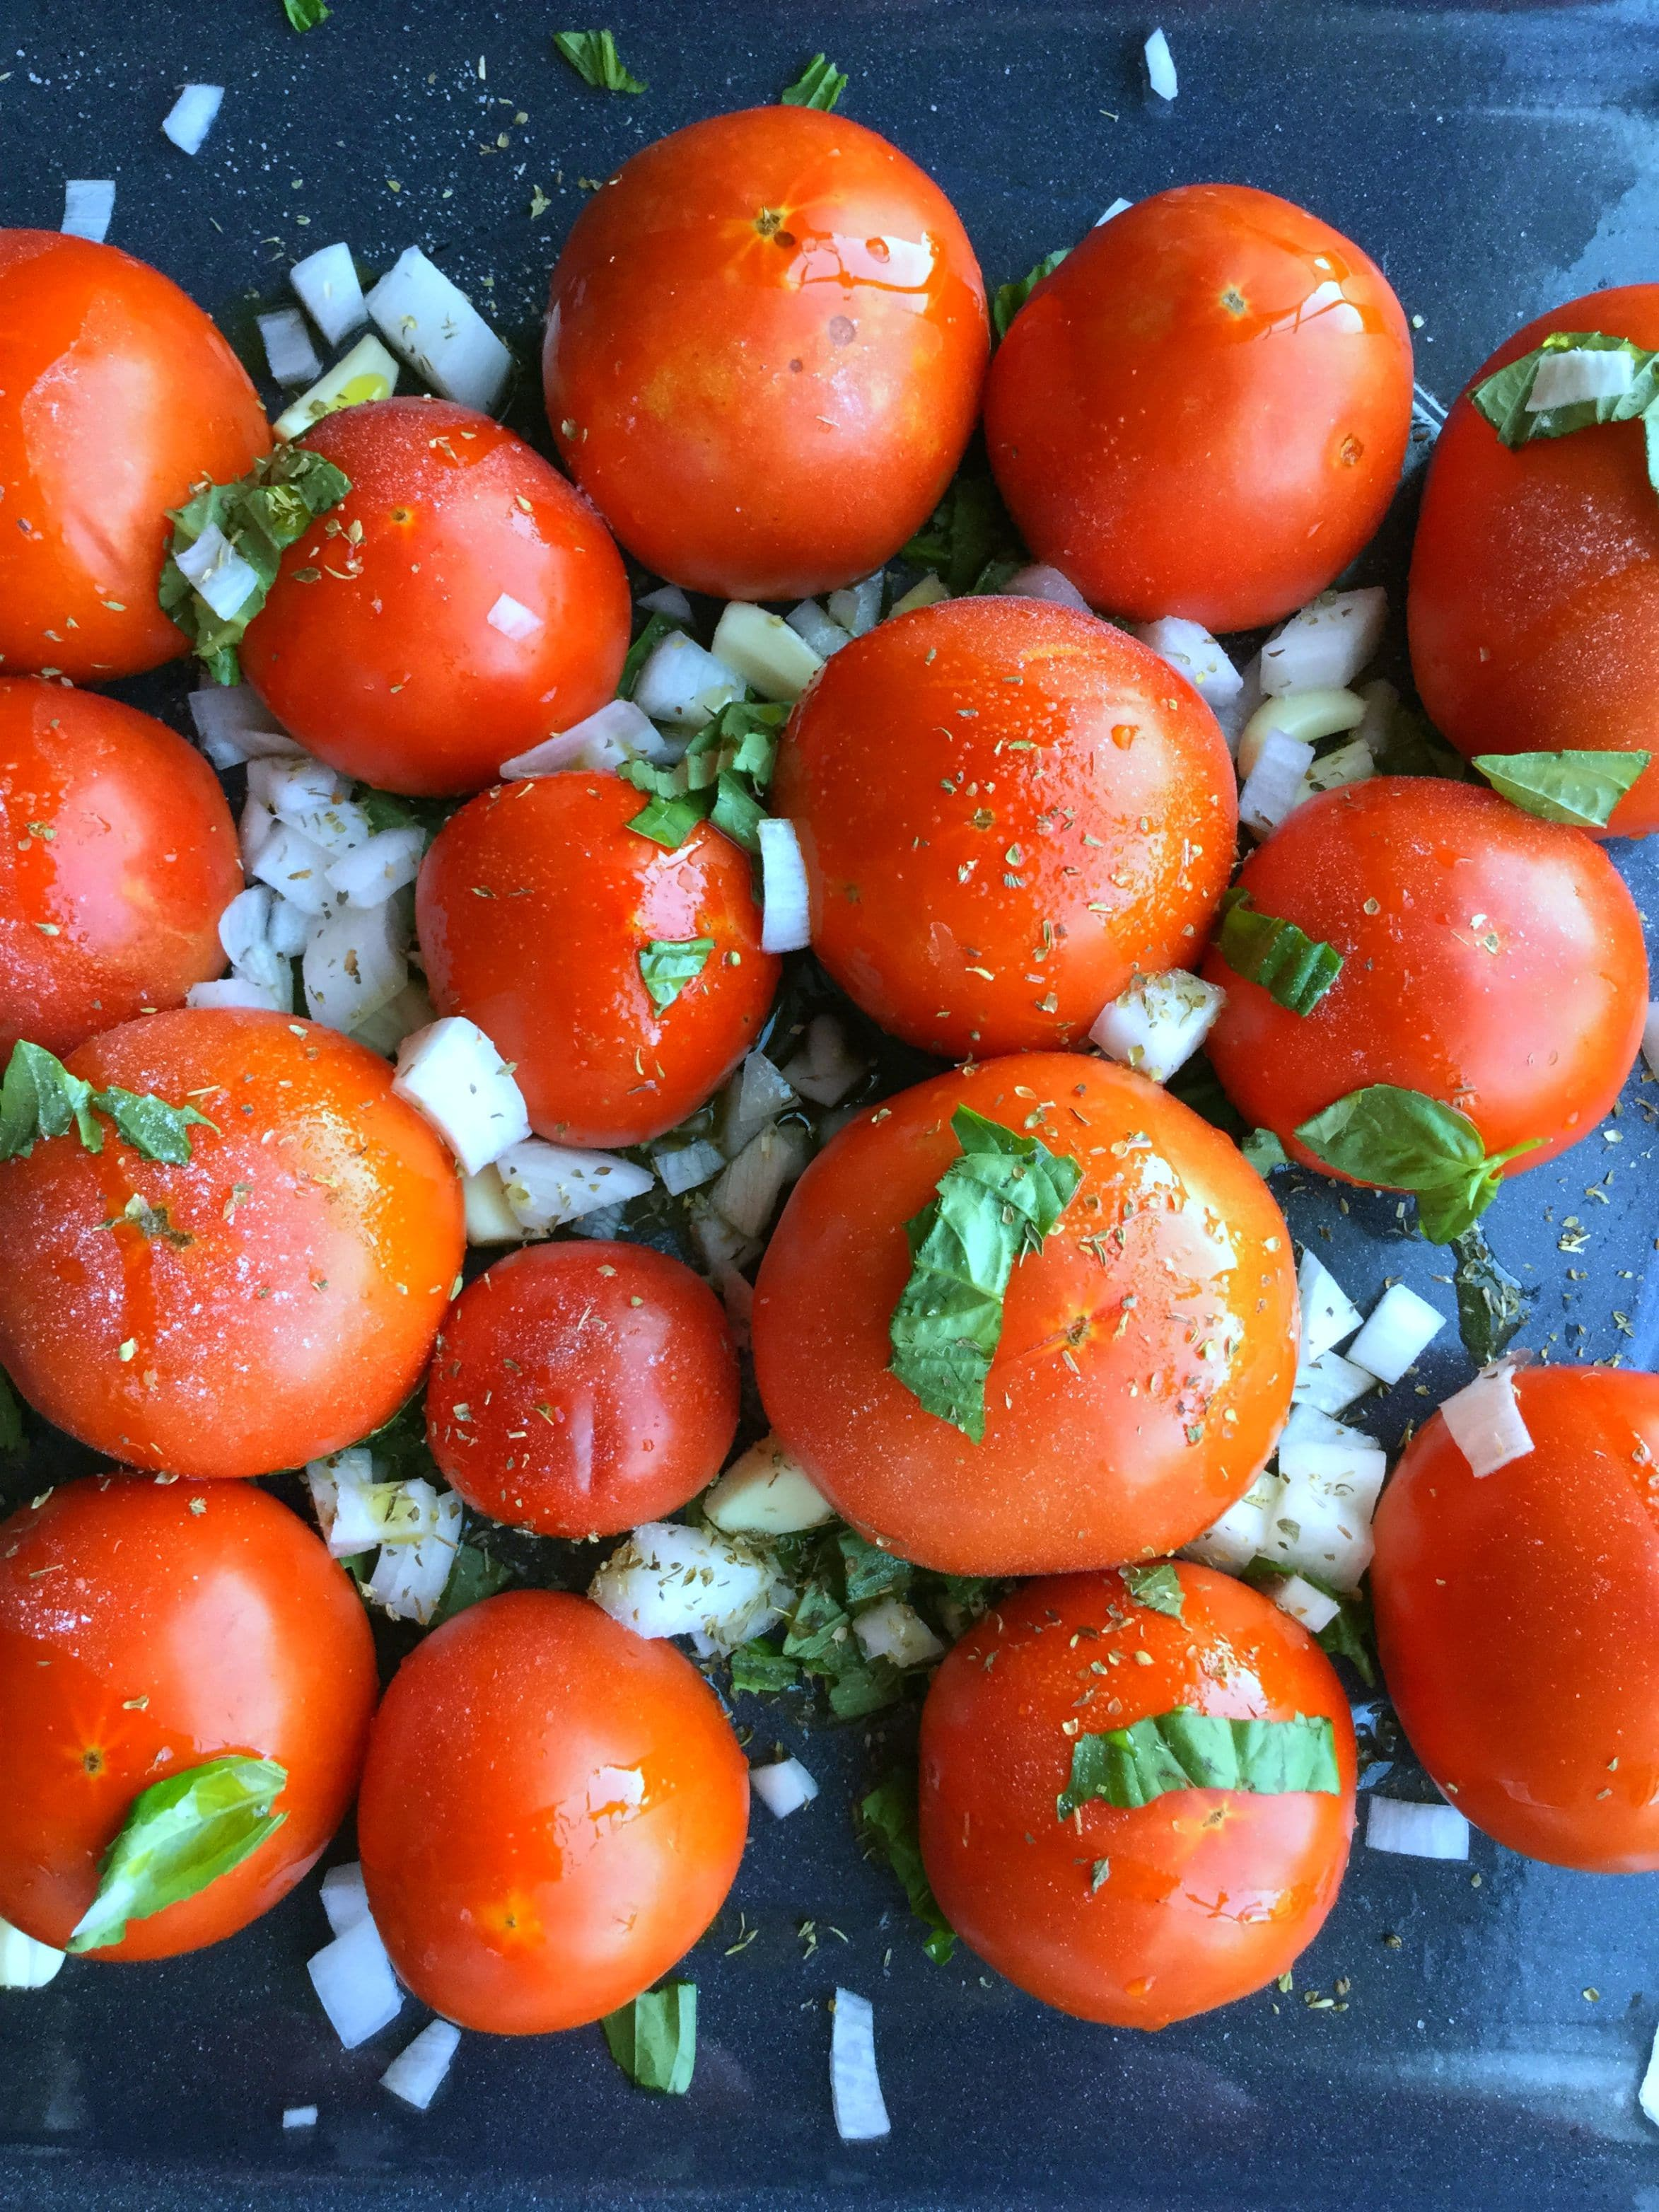 Tomatoes pre-roasting -The ultimate signature roasted tomatoes sauce, flavorful in taste and rich in consistency.